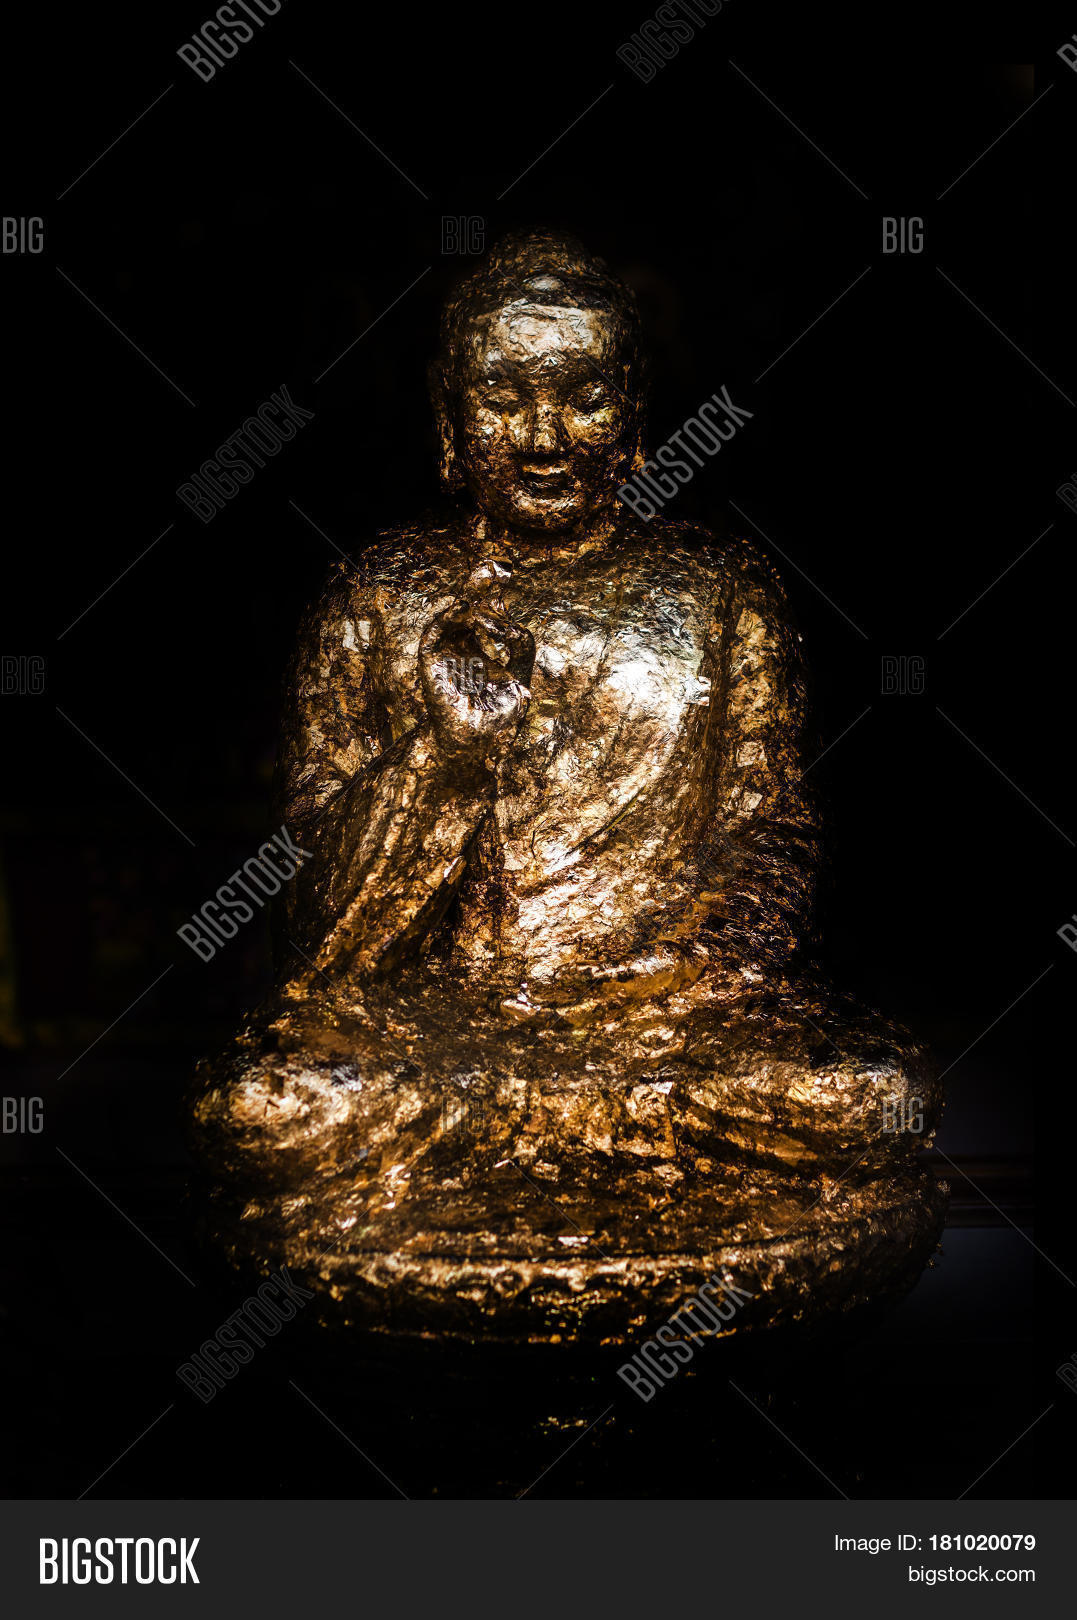 essay on buddism Iintroduction p401 the influence of buddhism on the formation of neo-confucianism during the sung period was many-sided and the effort to clarify this issue poses a number of very difficult methodological problems neo-confucianism has been.